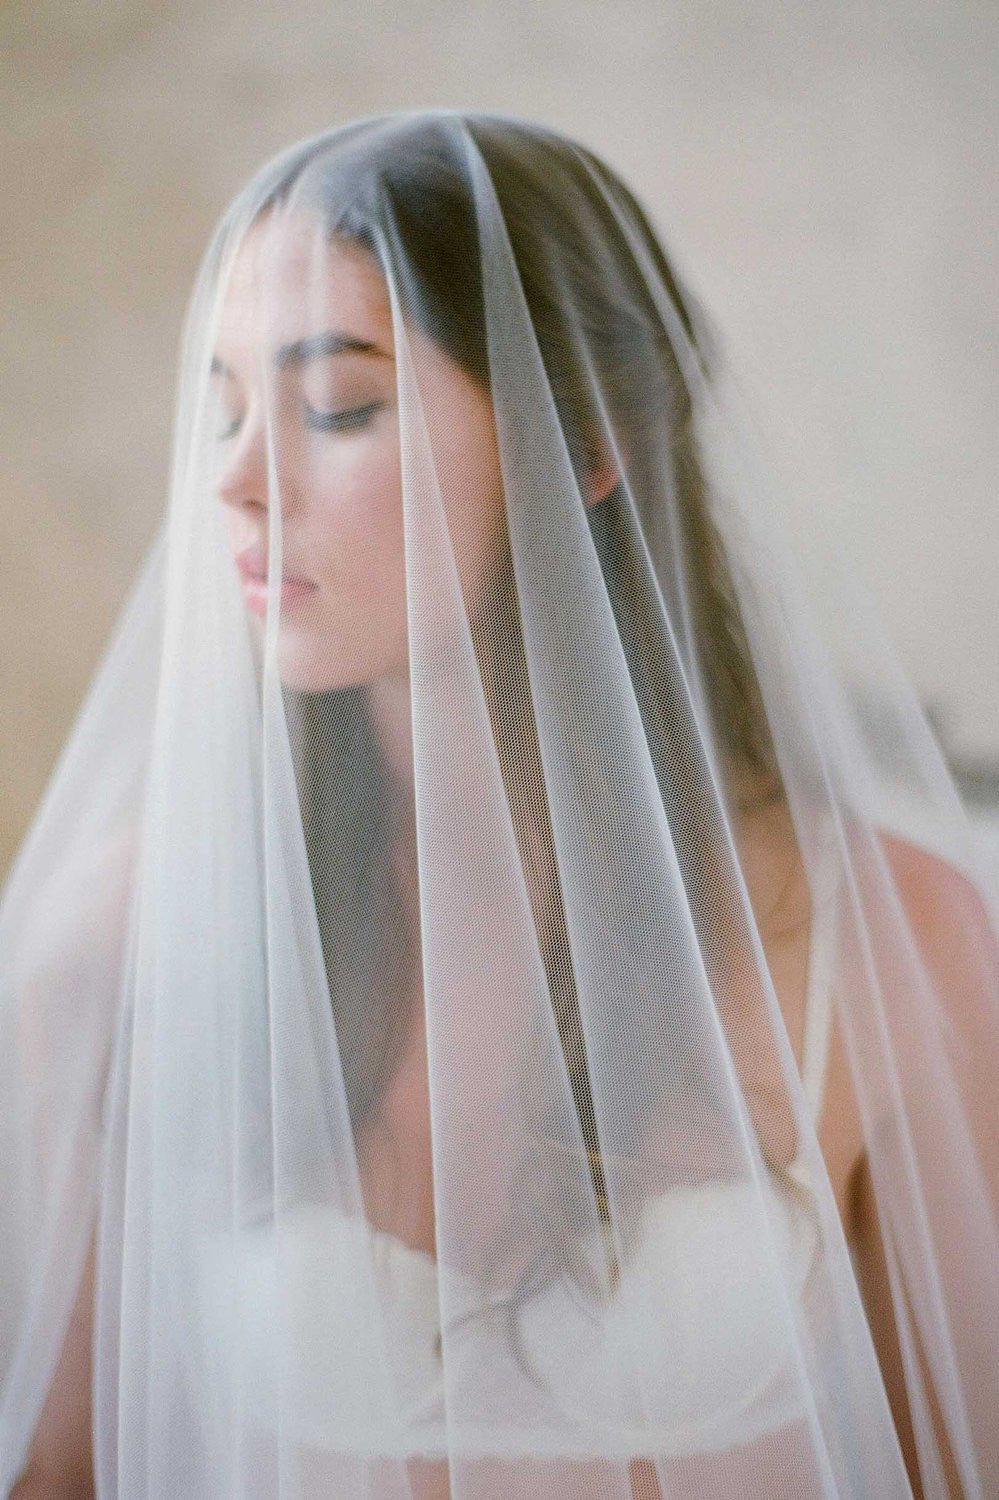 SOPHIE FRENCH LACE SCALLOP BLUSHER VEIL with comb ivory off white cathedral wedding bridal